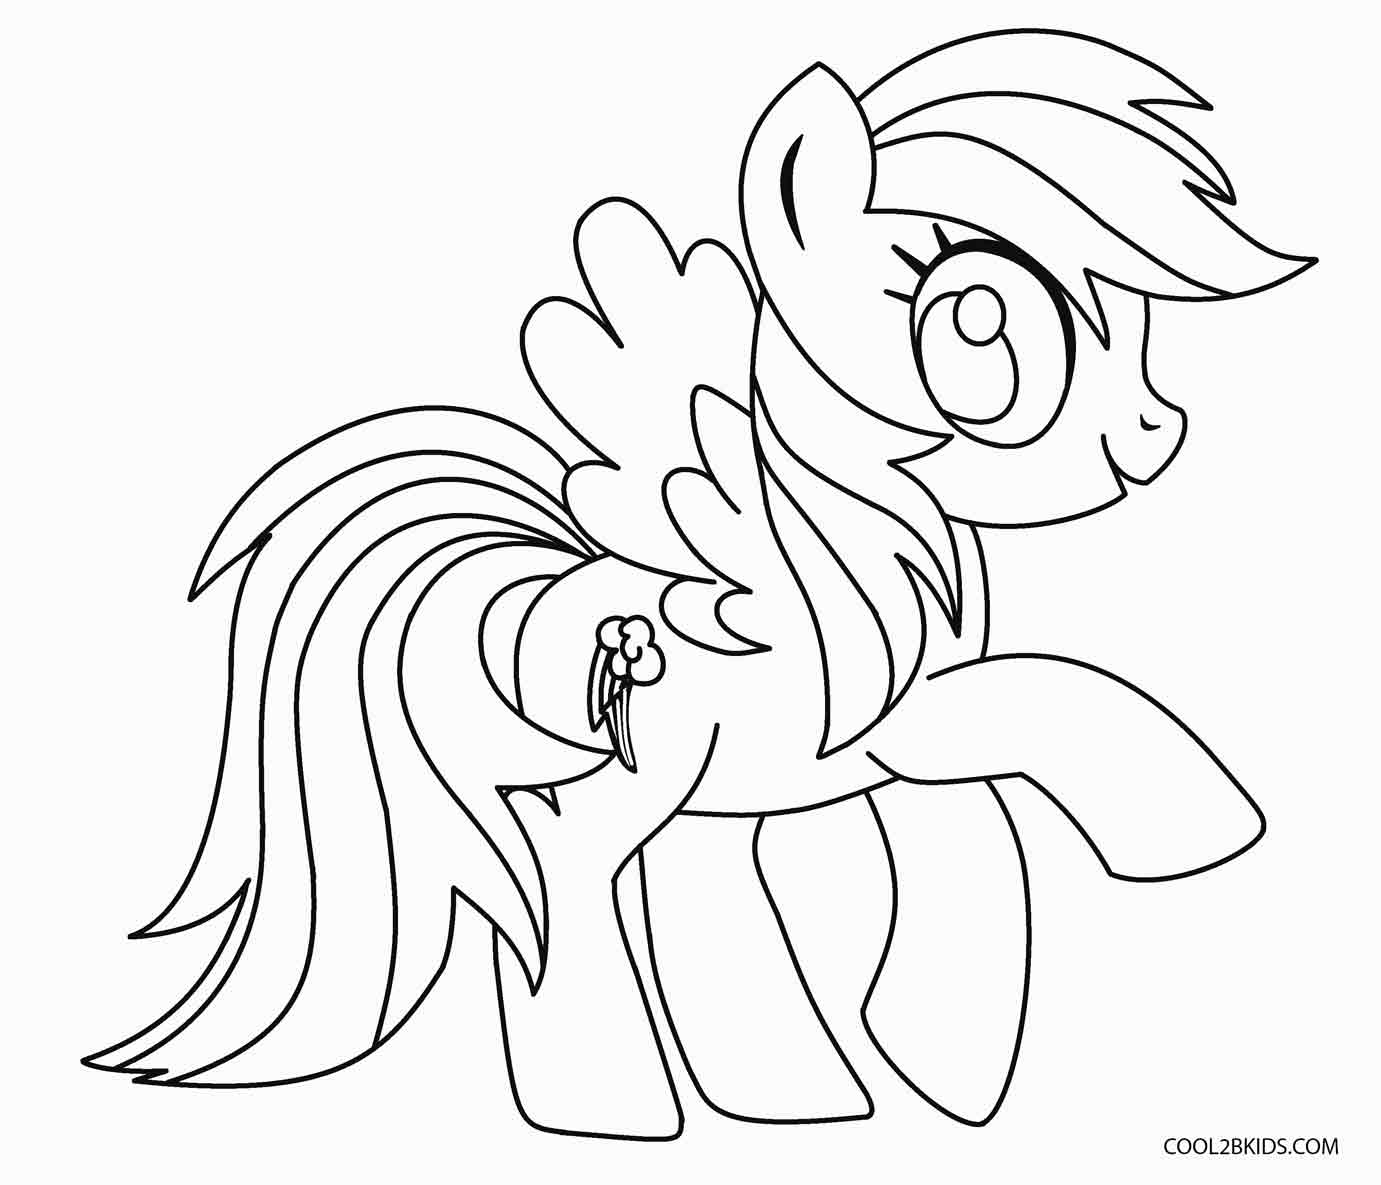 coloring page pony my little pony coloring pages print and colorcom coloring pony page